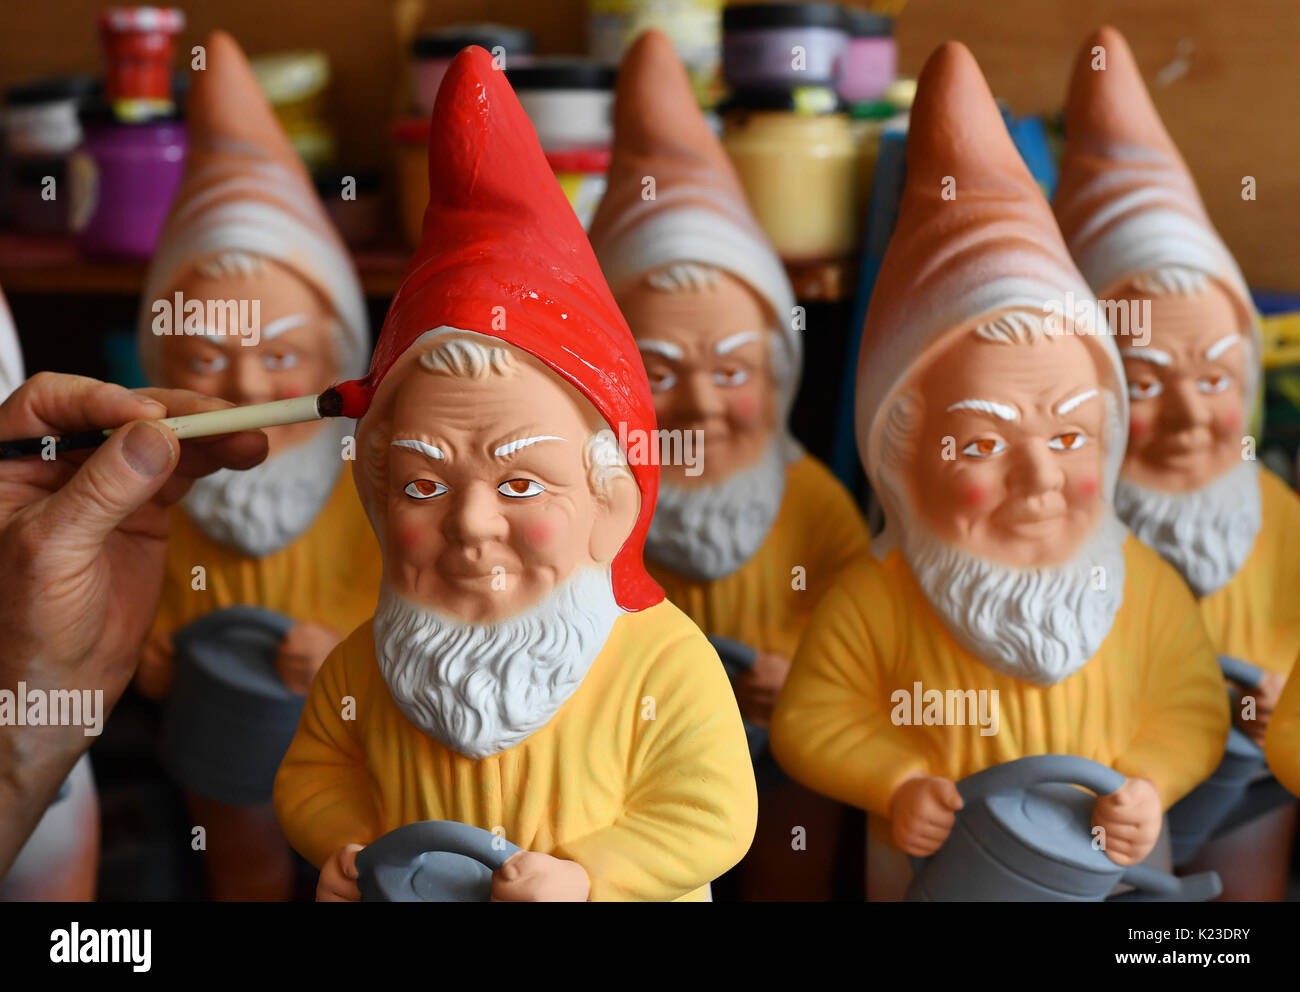 Graefenroda, Germany. 25th Aug, 2017. Garden gnomes, photographed at the garden gnome manufactory in Graefenroda, Germany, 25 August 2017. More than 500 different figures between four and 60 centimeters are manufactured here. Since 1874, the Griebel family has been producing the burnt clay figures and is now the only company in Germany. Most clients outside of Germany are from France, Austria, Italy, the Netherlands and Switzerland. Photo: Jens Kalaene/dpa-Zentralbild/dpa/Alamy Live News - Stock Image